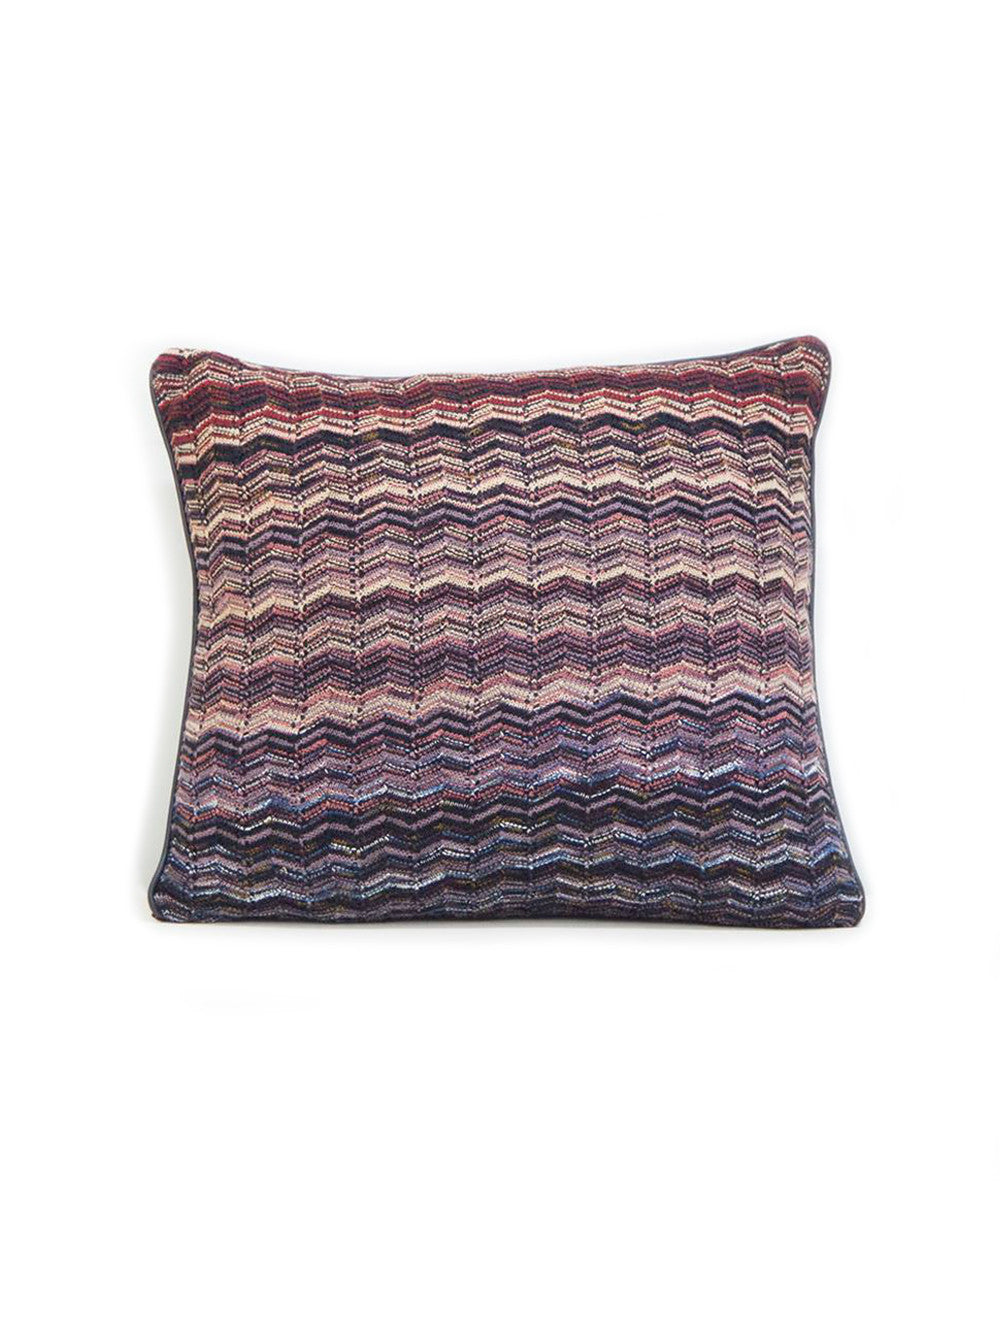 Berry Knit Cushion - SABATINI